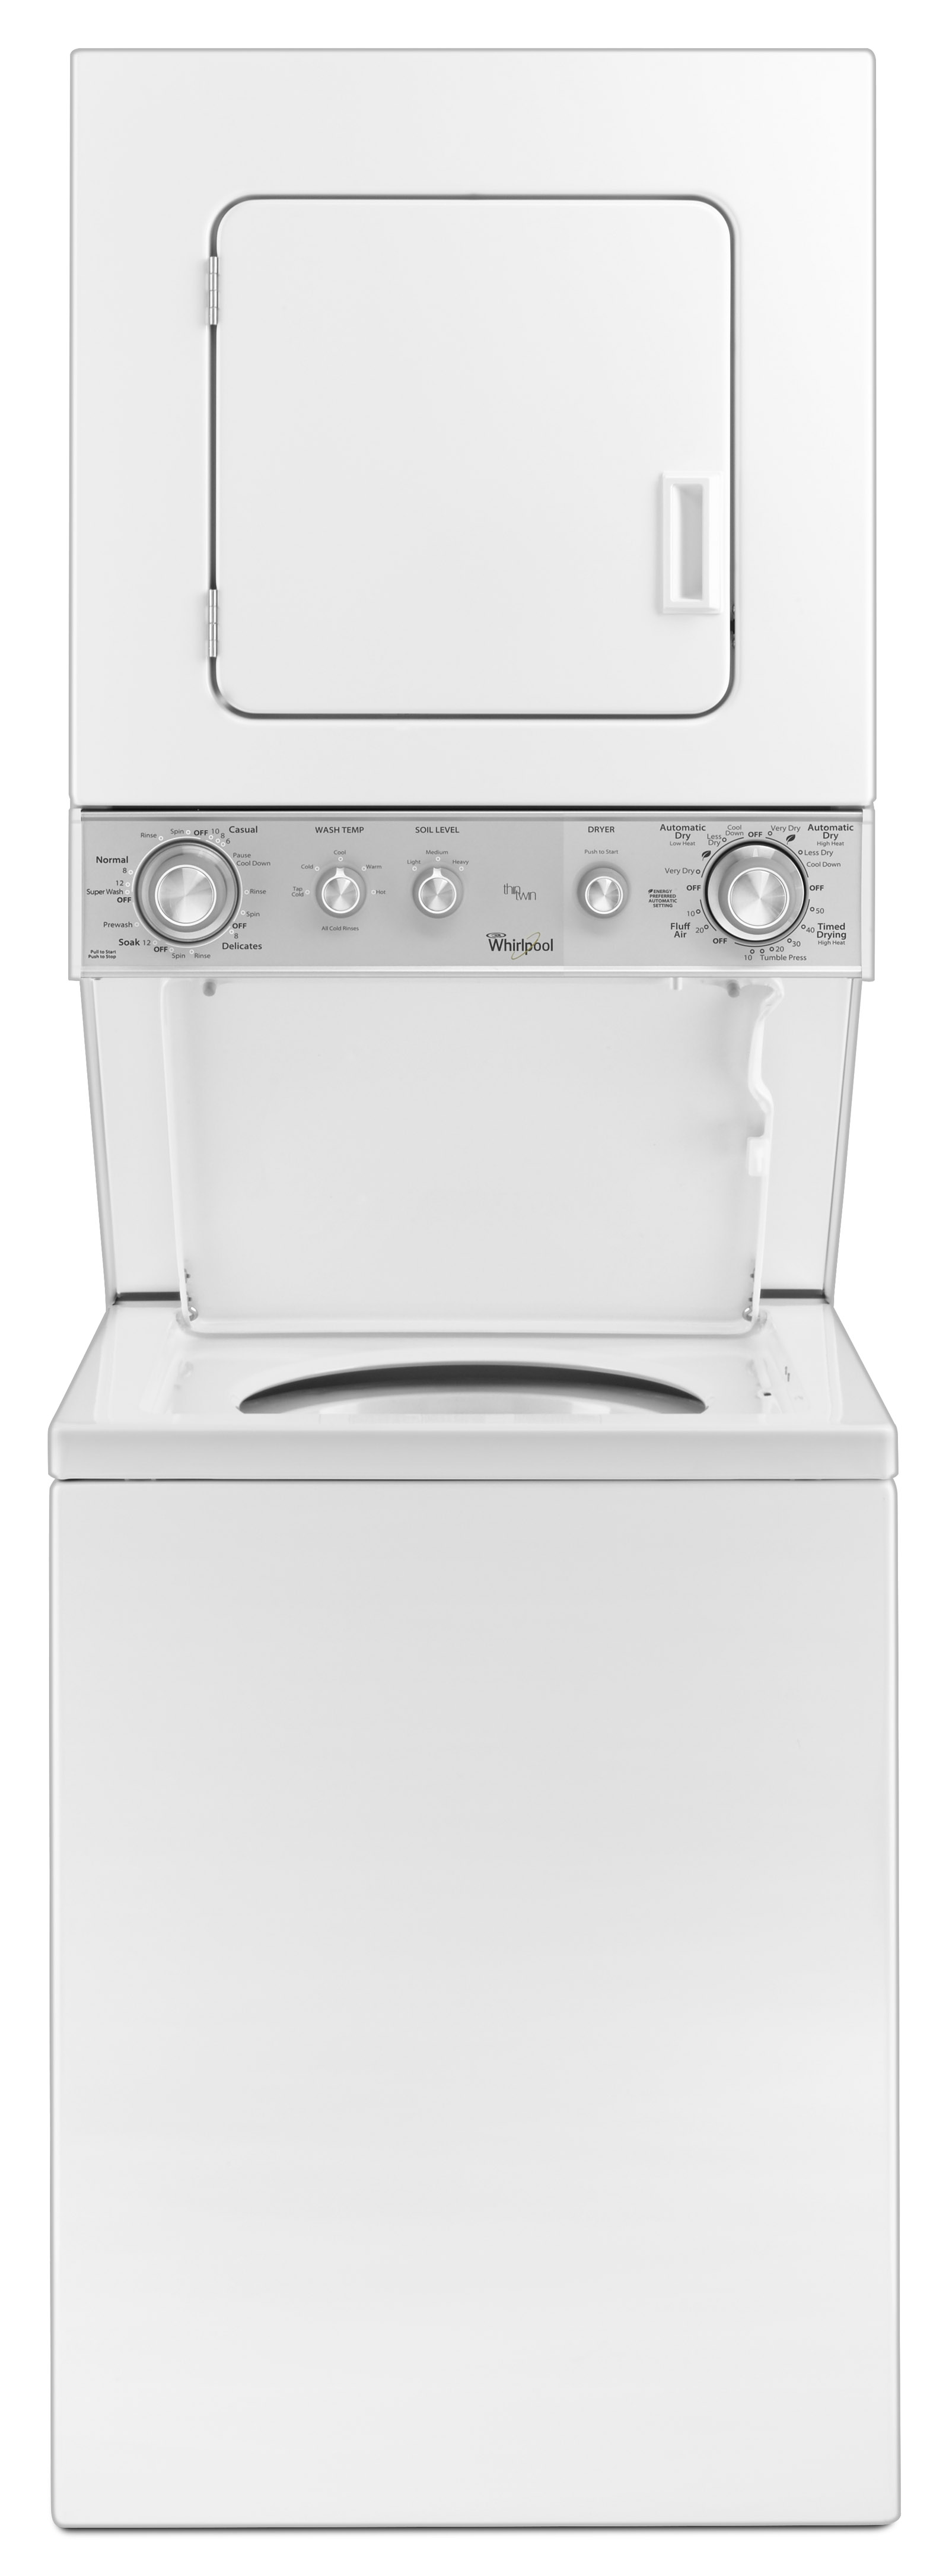 """Whirlpool WET4024EW 24"""" Full-Size Electric Stacked Laundry Unit - White"""